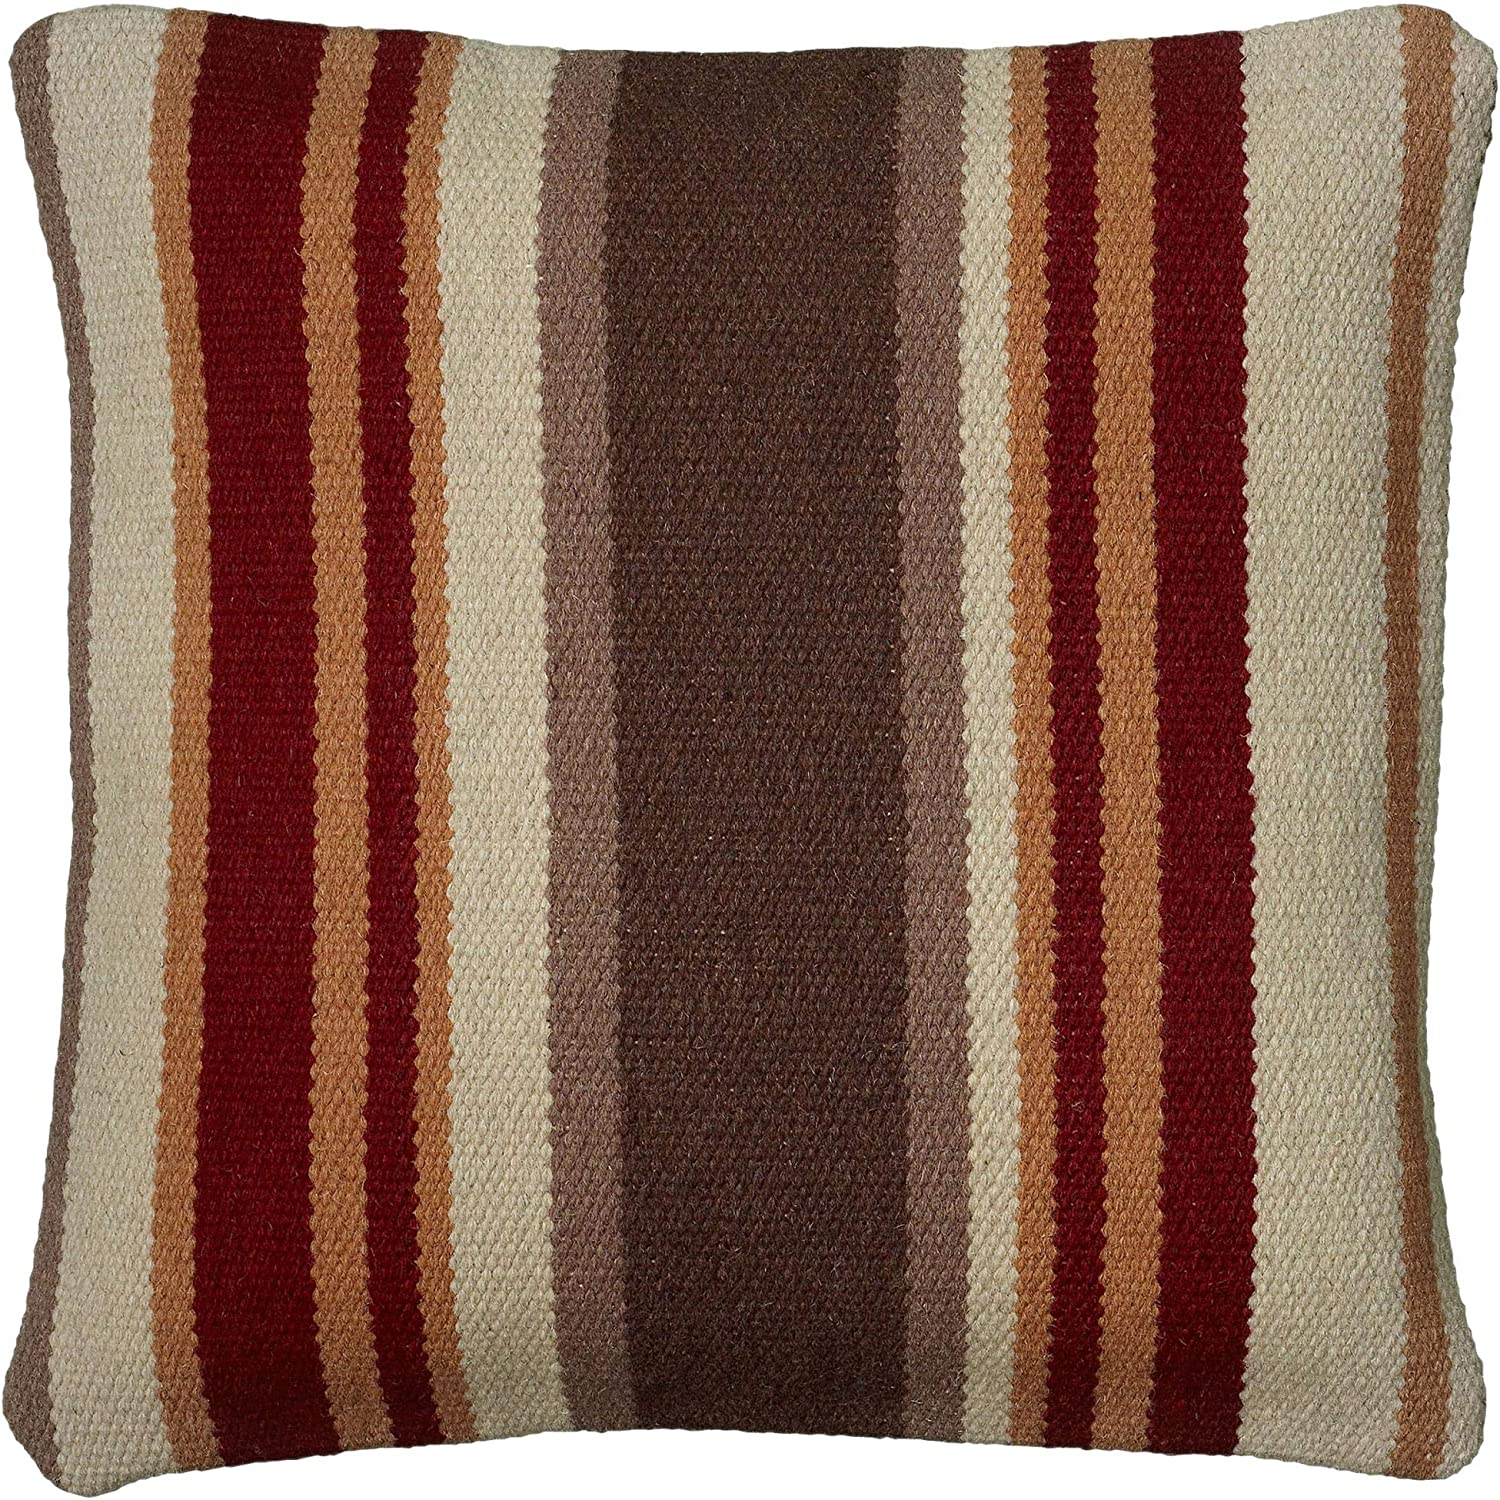 "Rizzy Home T05985 Decorative Pillow, 18""X18"", Brown/Orange/Neutral"